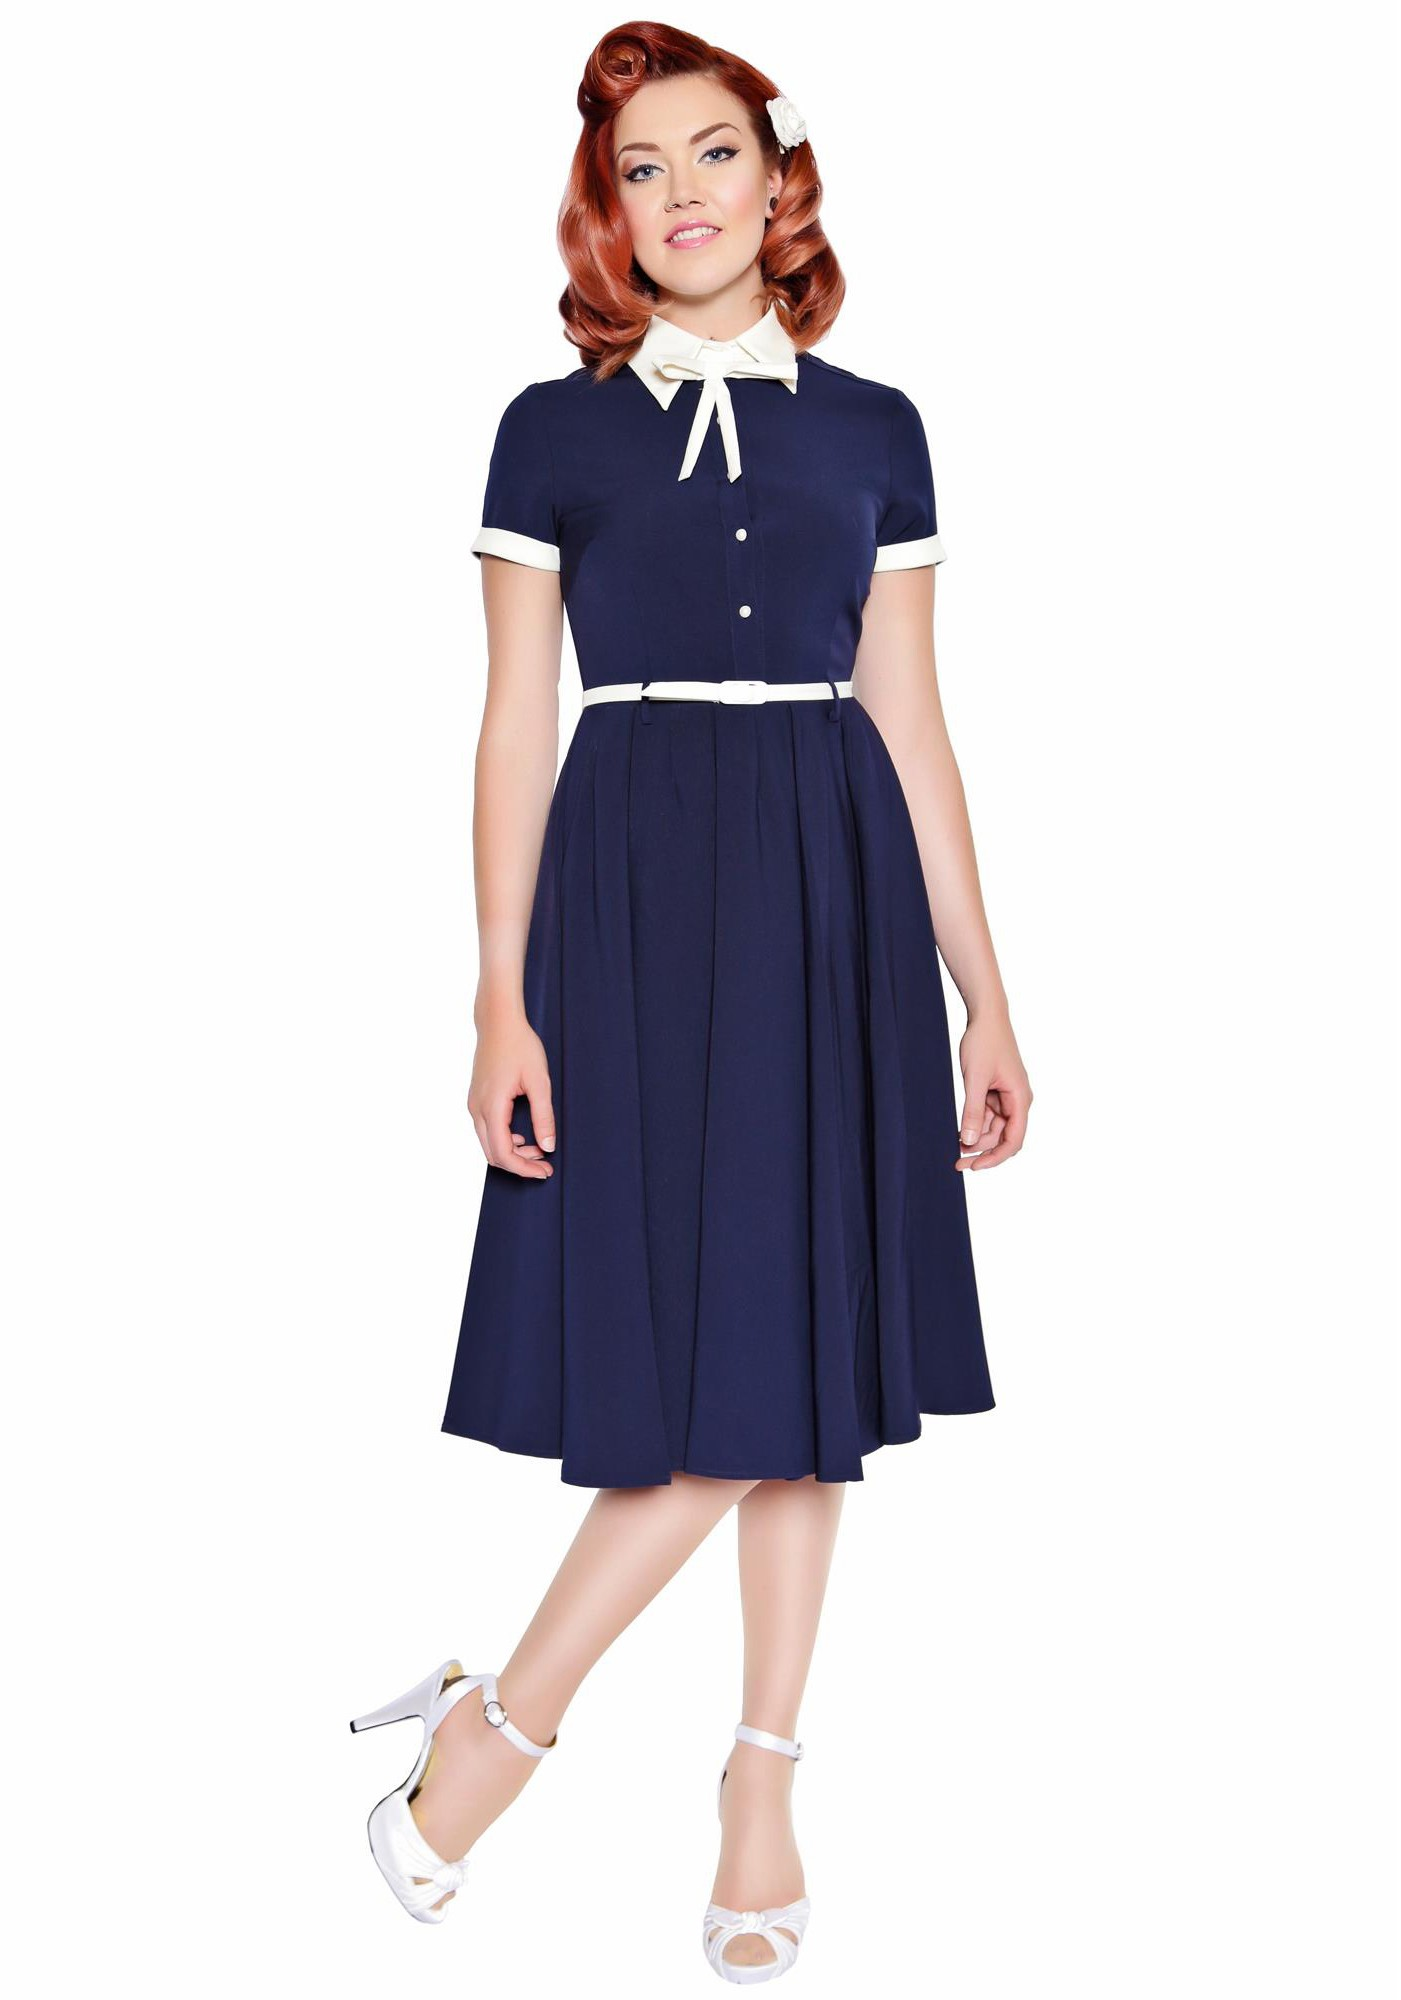 The headstrong independent vintage woman dress